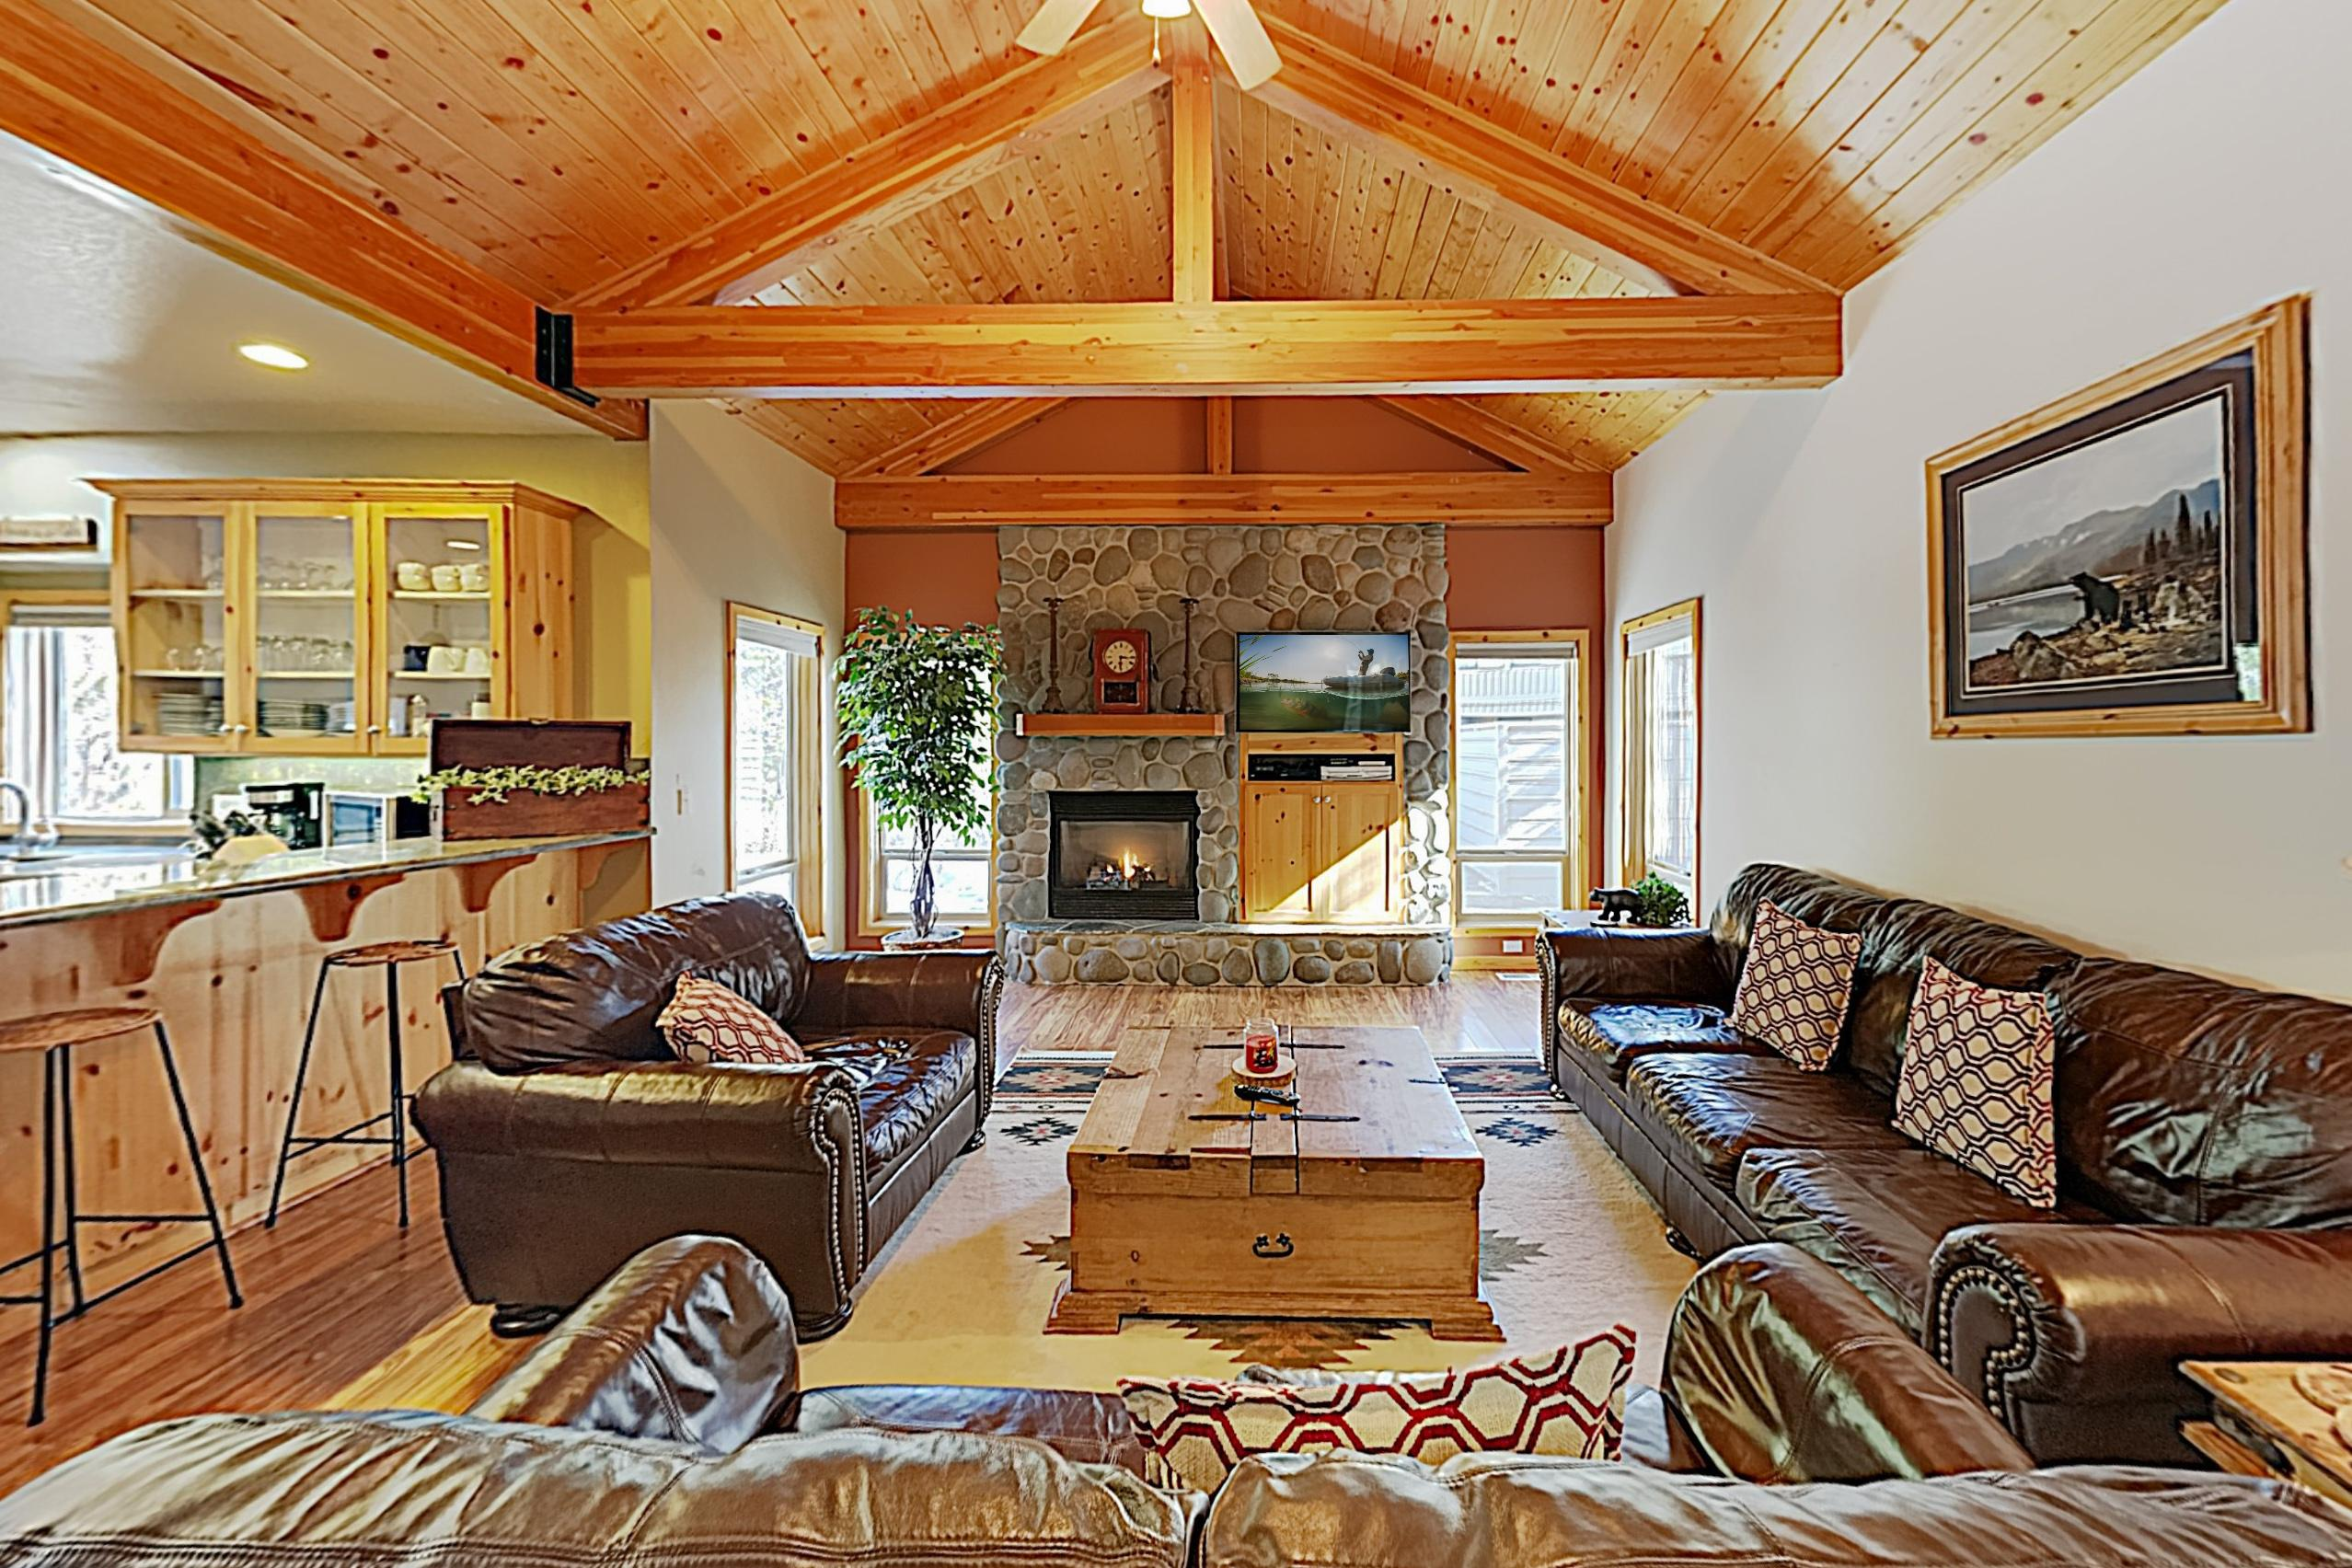 Welcome to Sunriver! This home is professionally managed by TurnKey Vacation Rentals.